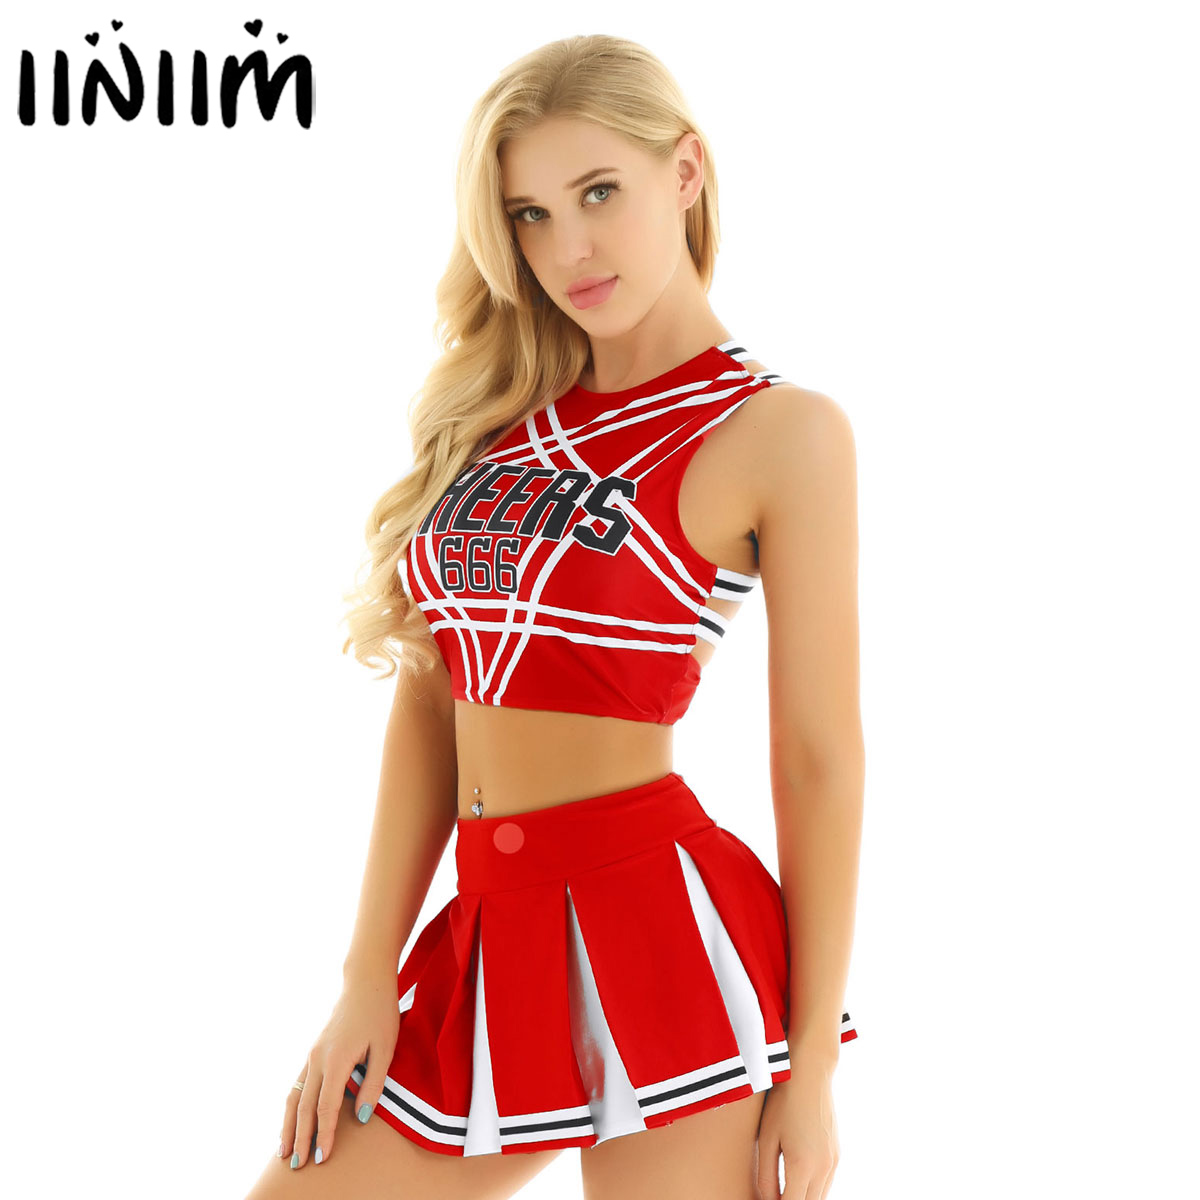 US UK STOCK Women Japanese Schoolgirl Cosplay Uniform Girl Sexy Lingerie Gleeing Cheerleader Costume Set Halloween Costume Femme